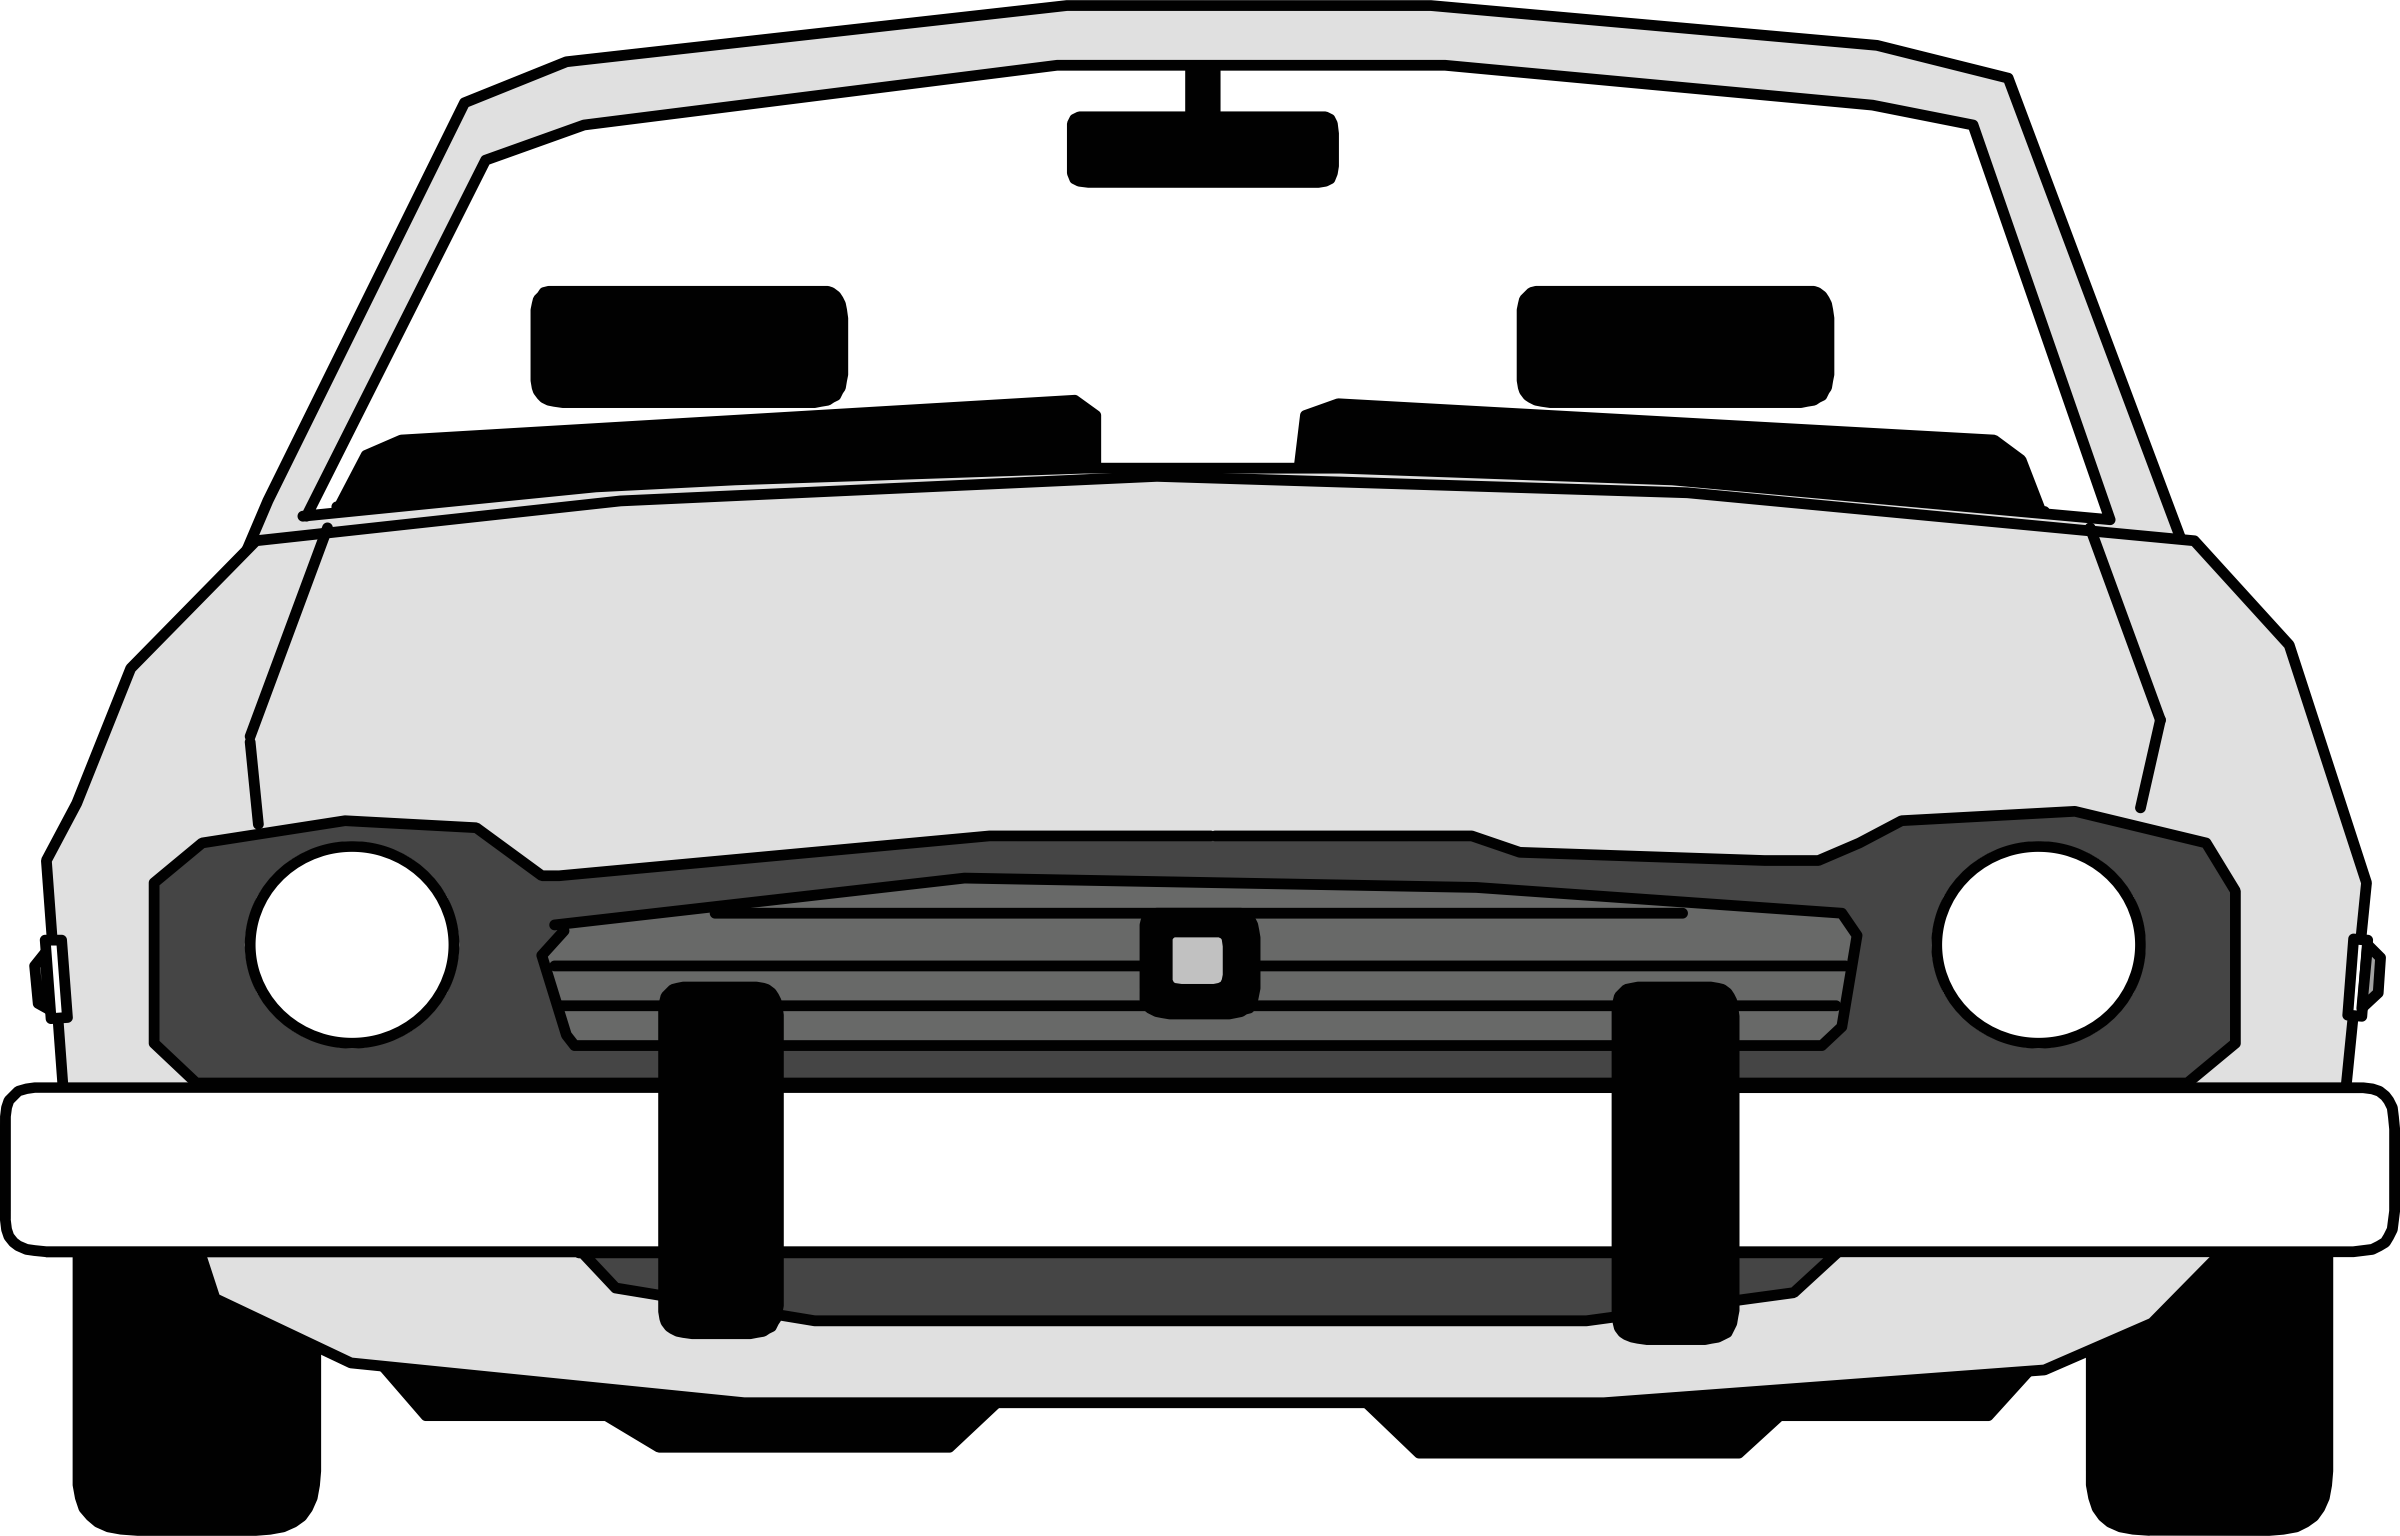 Rear Facing Car Clipart.